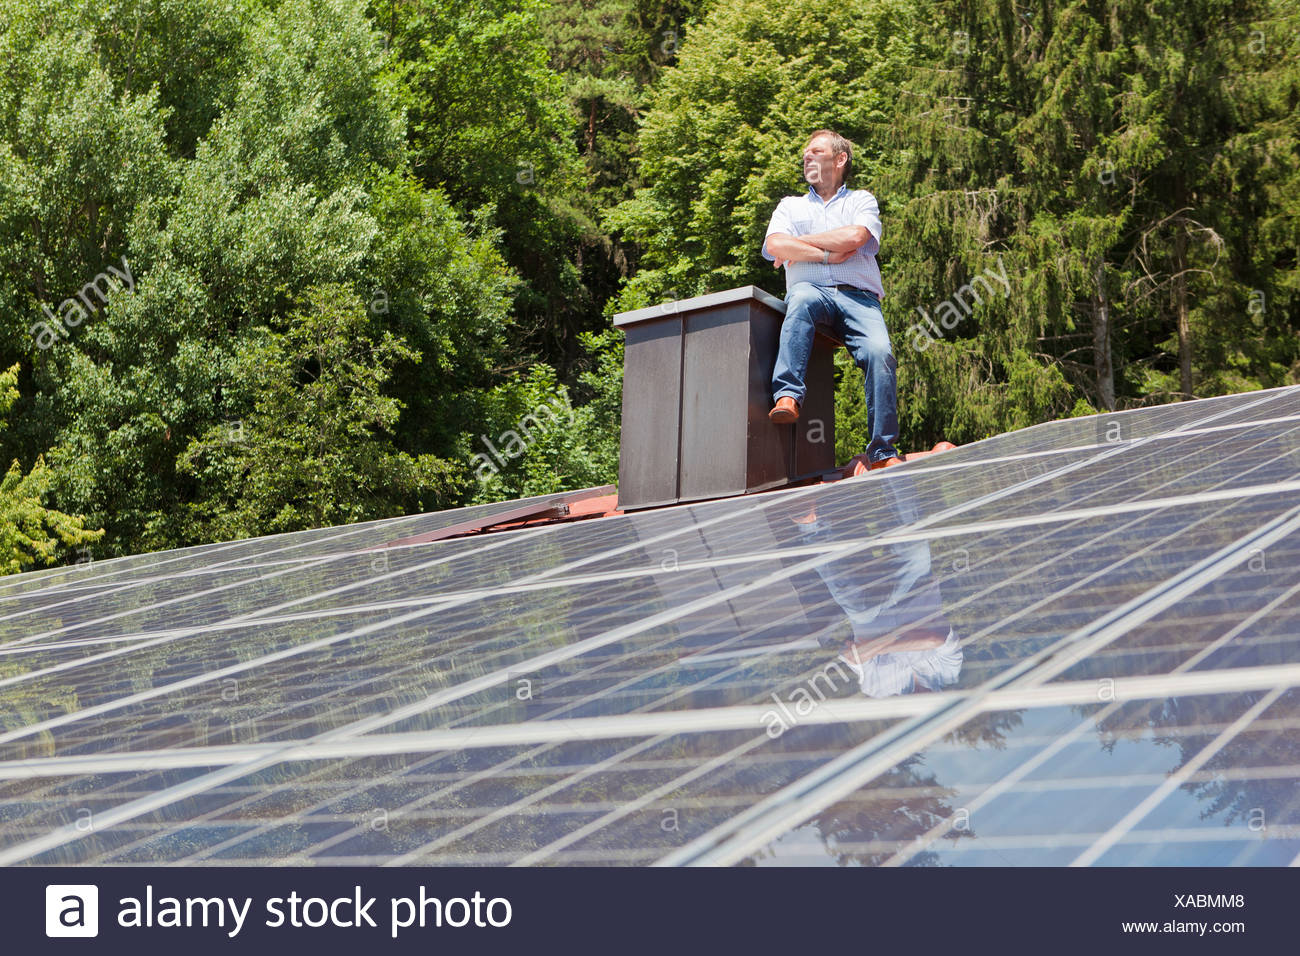 Man standing on solar paneled roof - Stock Image